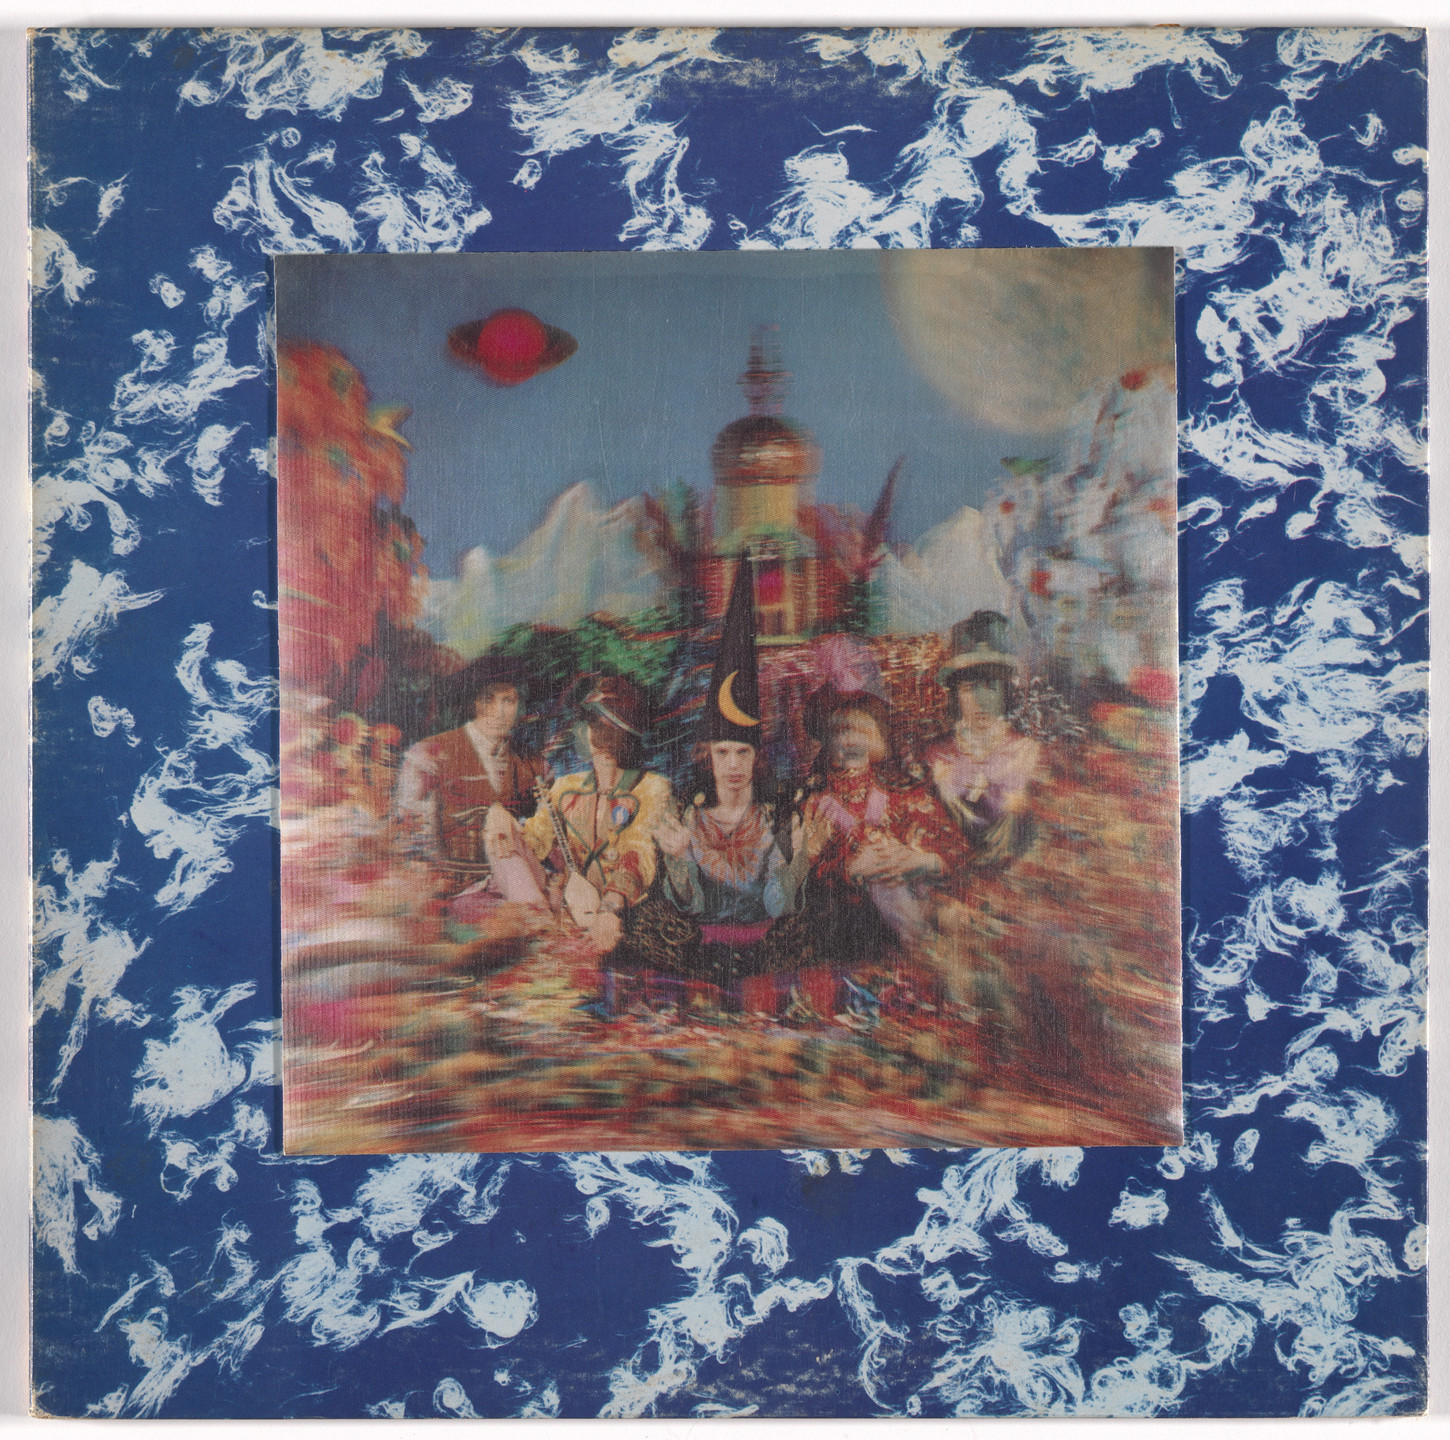 Michael Cooper, Pictorial Productions, Tony Meeviwiffen, Decca Records. Album cover for The Rolling Stones, Their Satanic Majesties Request. 1967